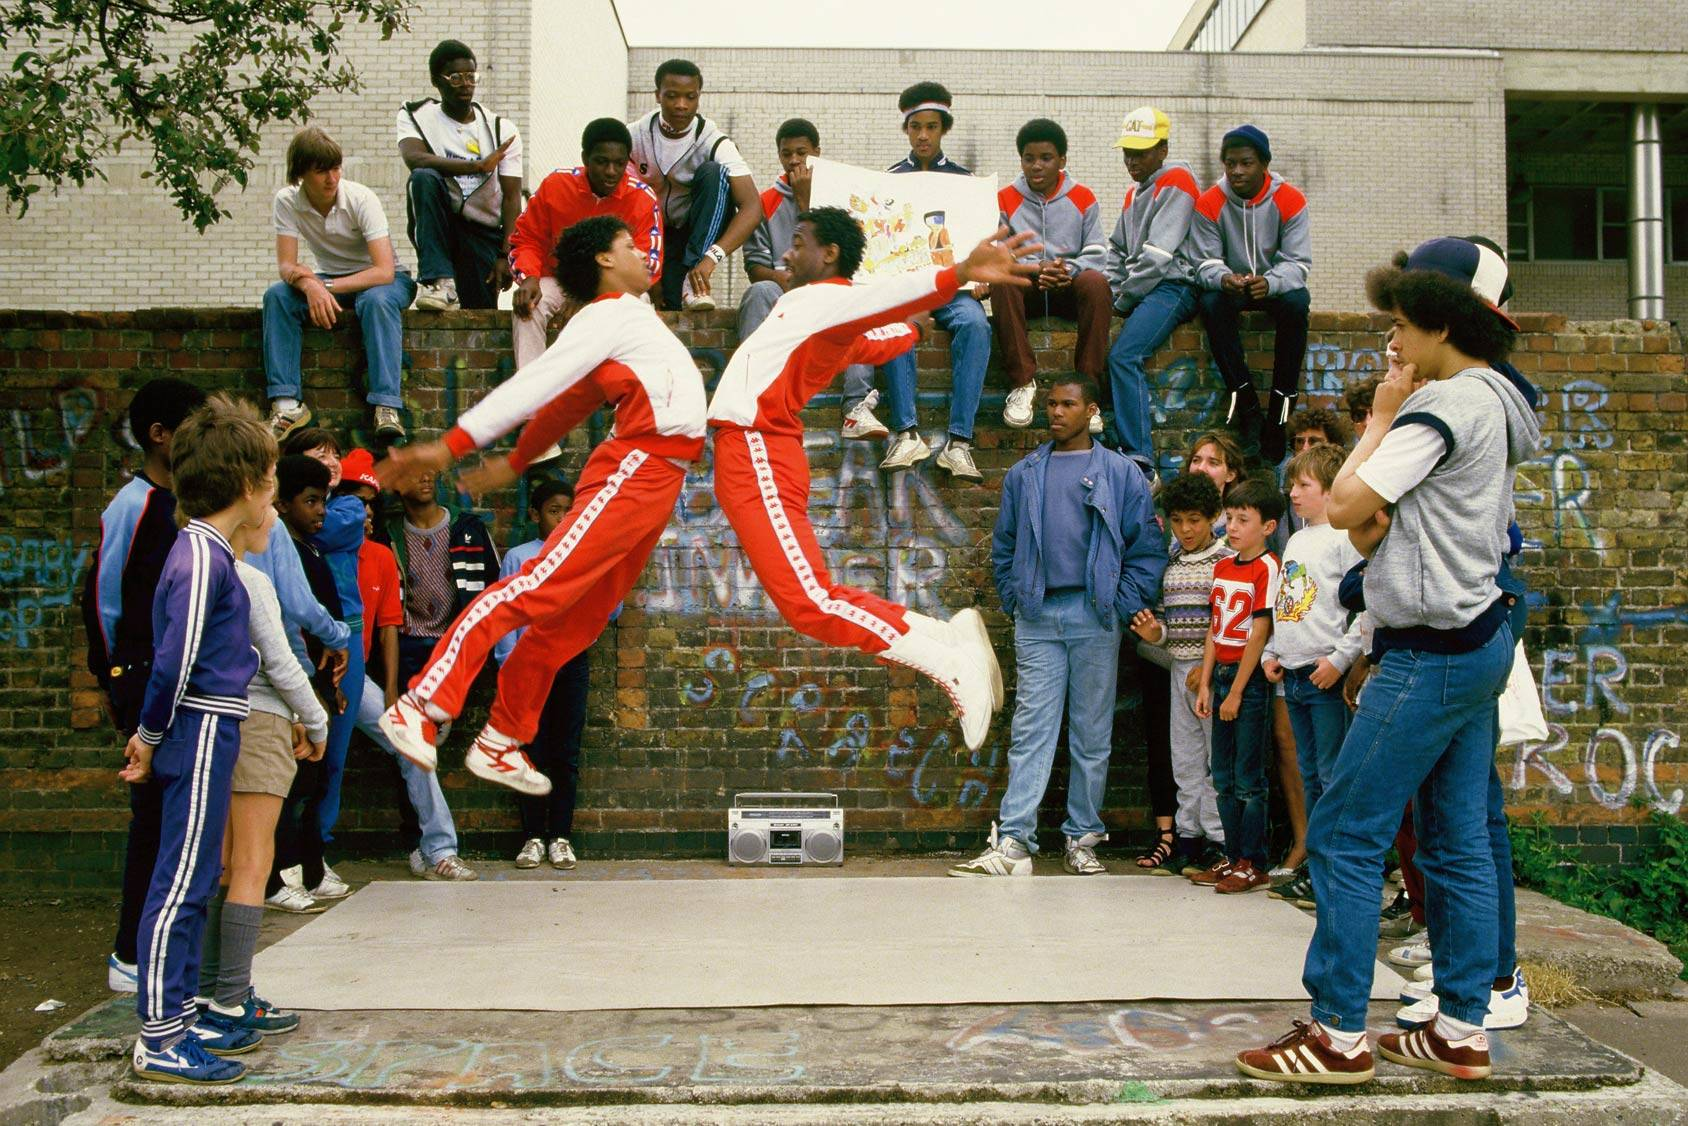 B-Boys on the streets of London in the 80's, All Over Press.